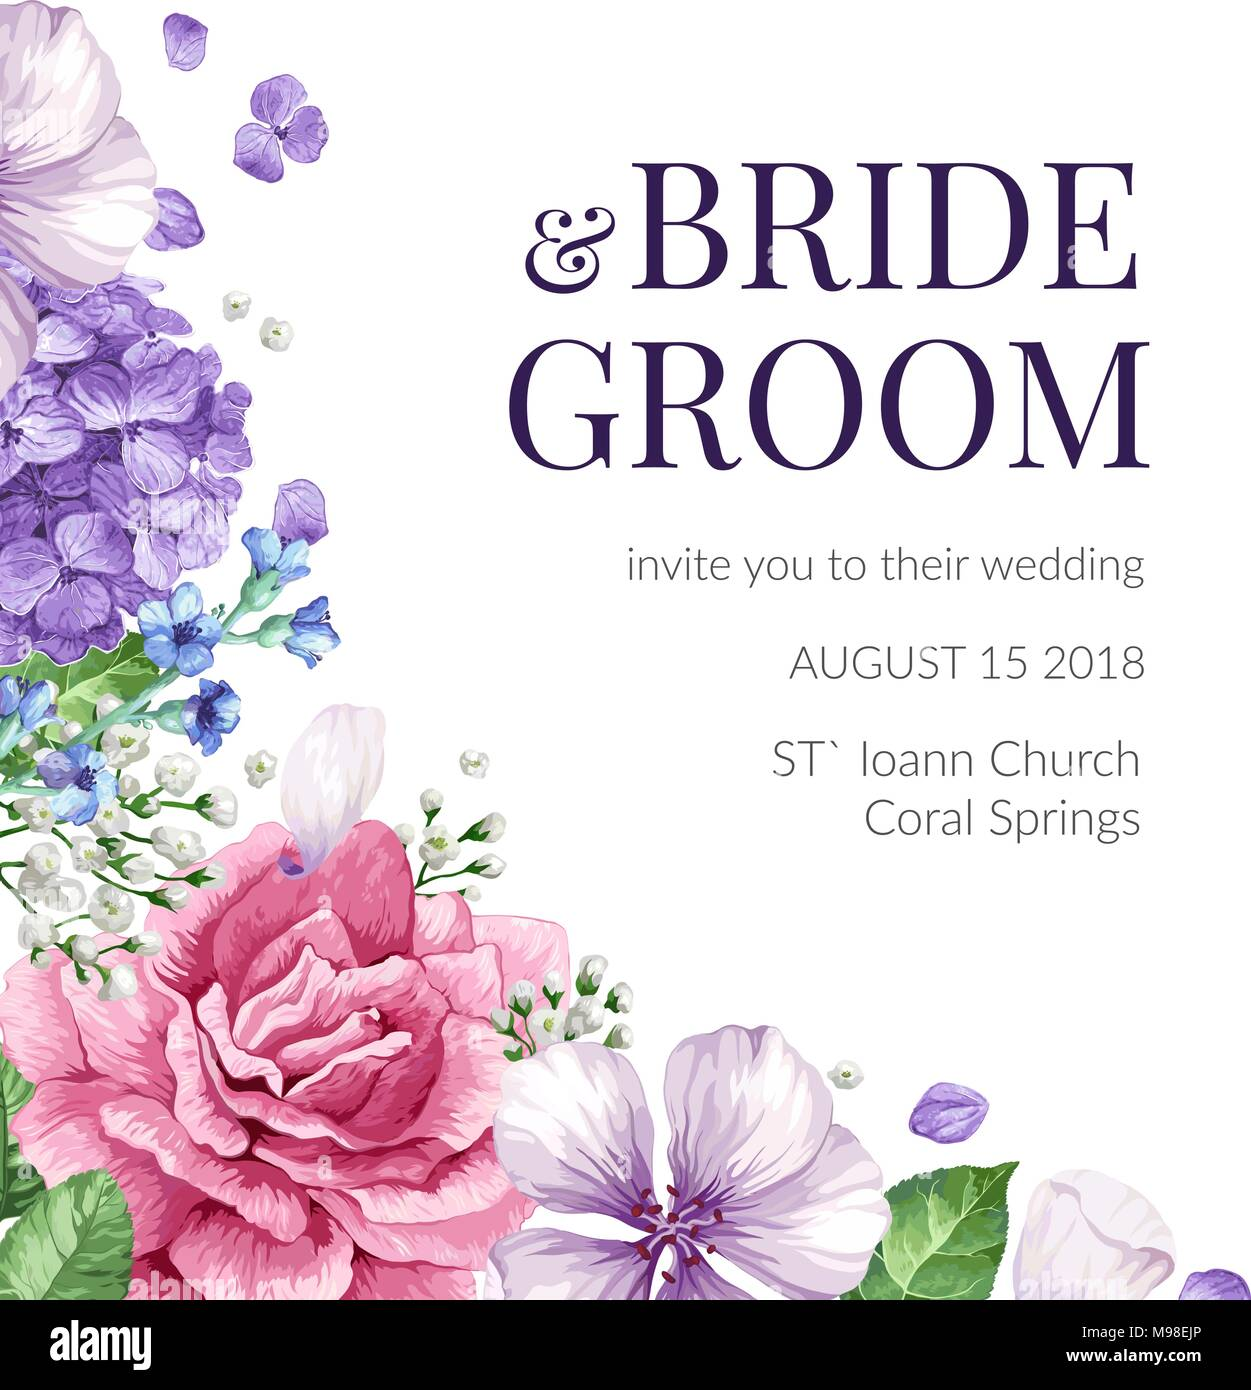 Wedding Invitation Card With Flowers In Watercolor Style On